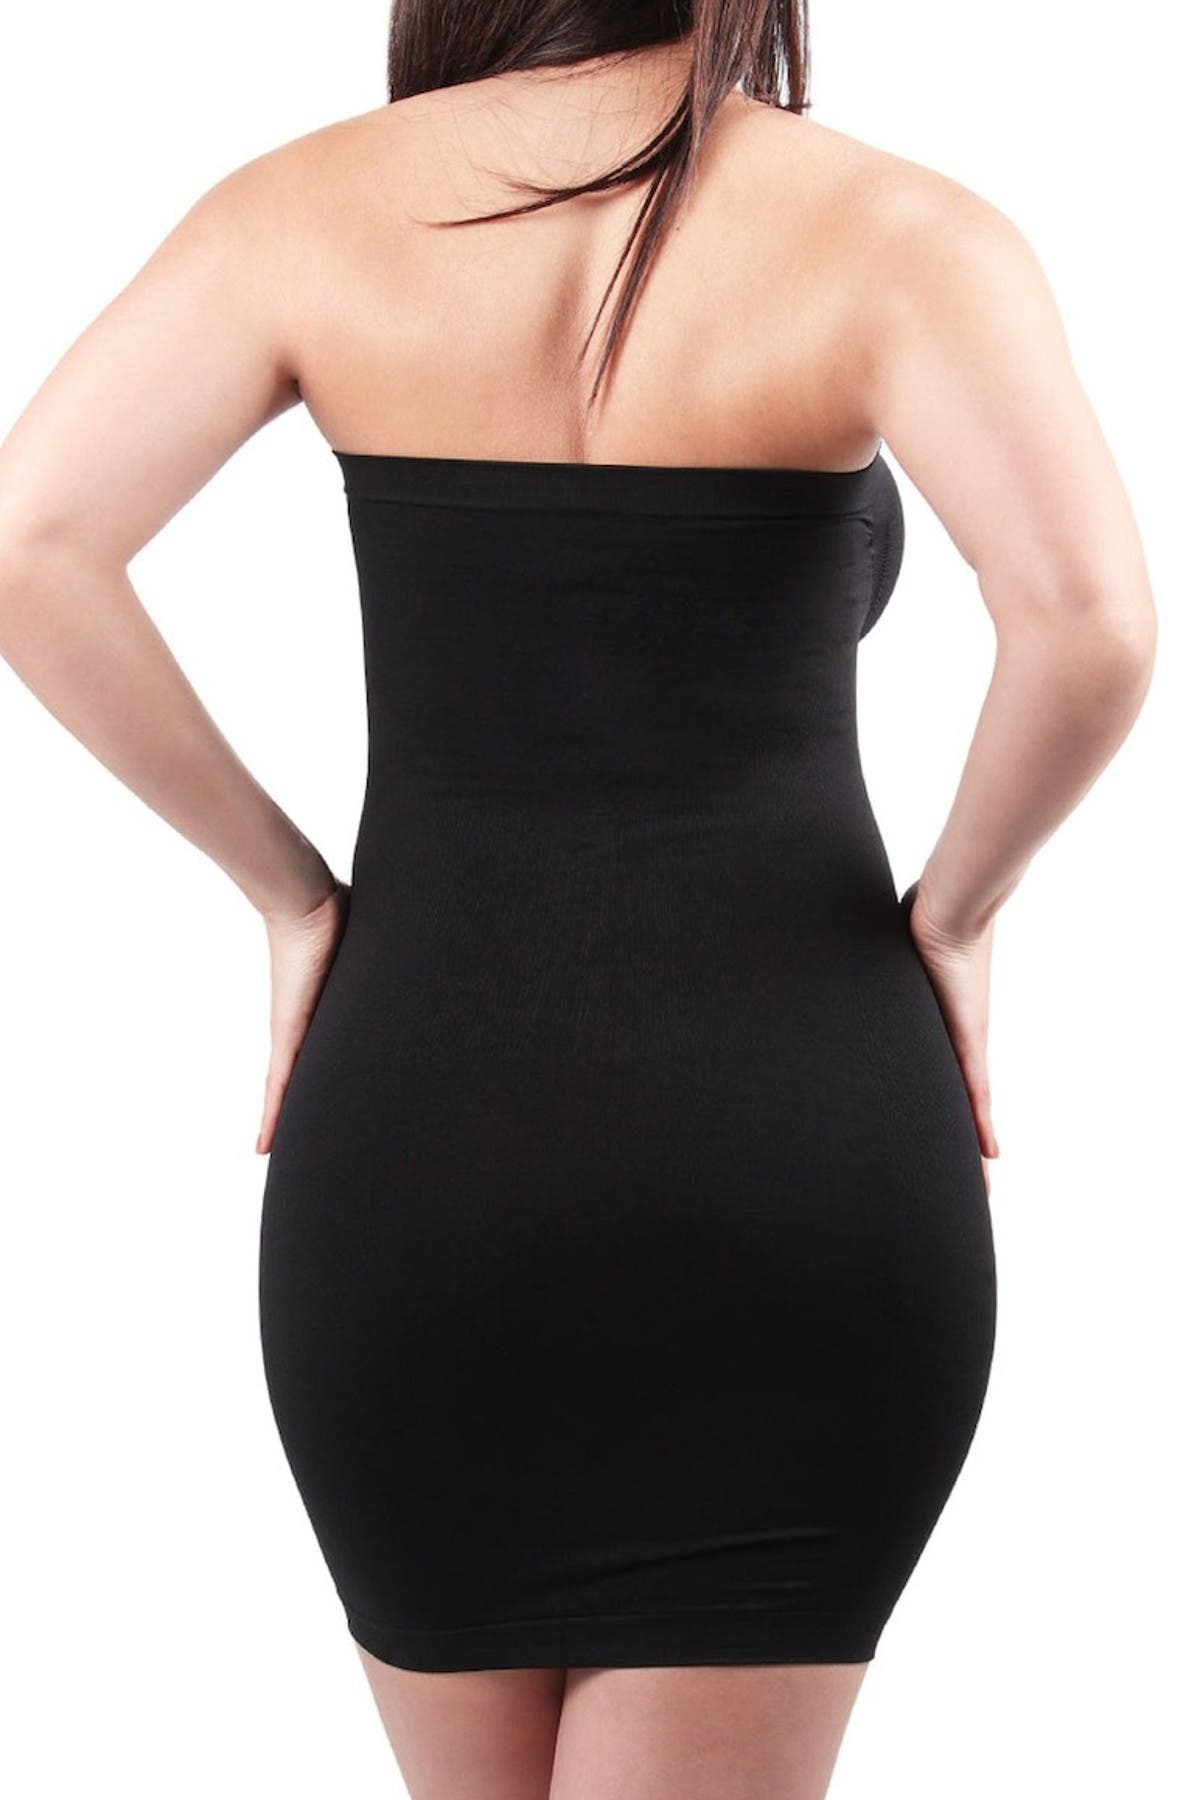 Image of MEMOI SlimMe Full Control Shaping Slip Dress